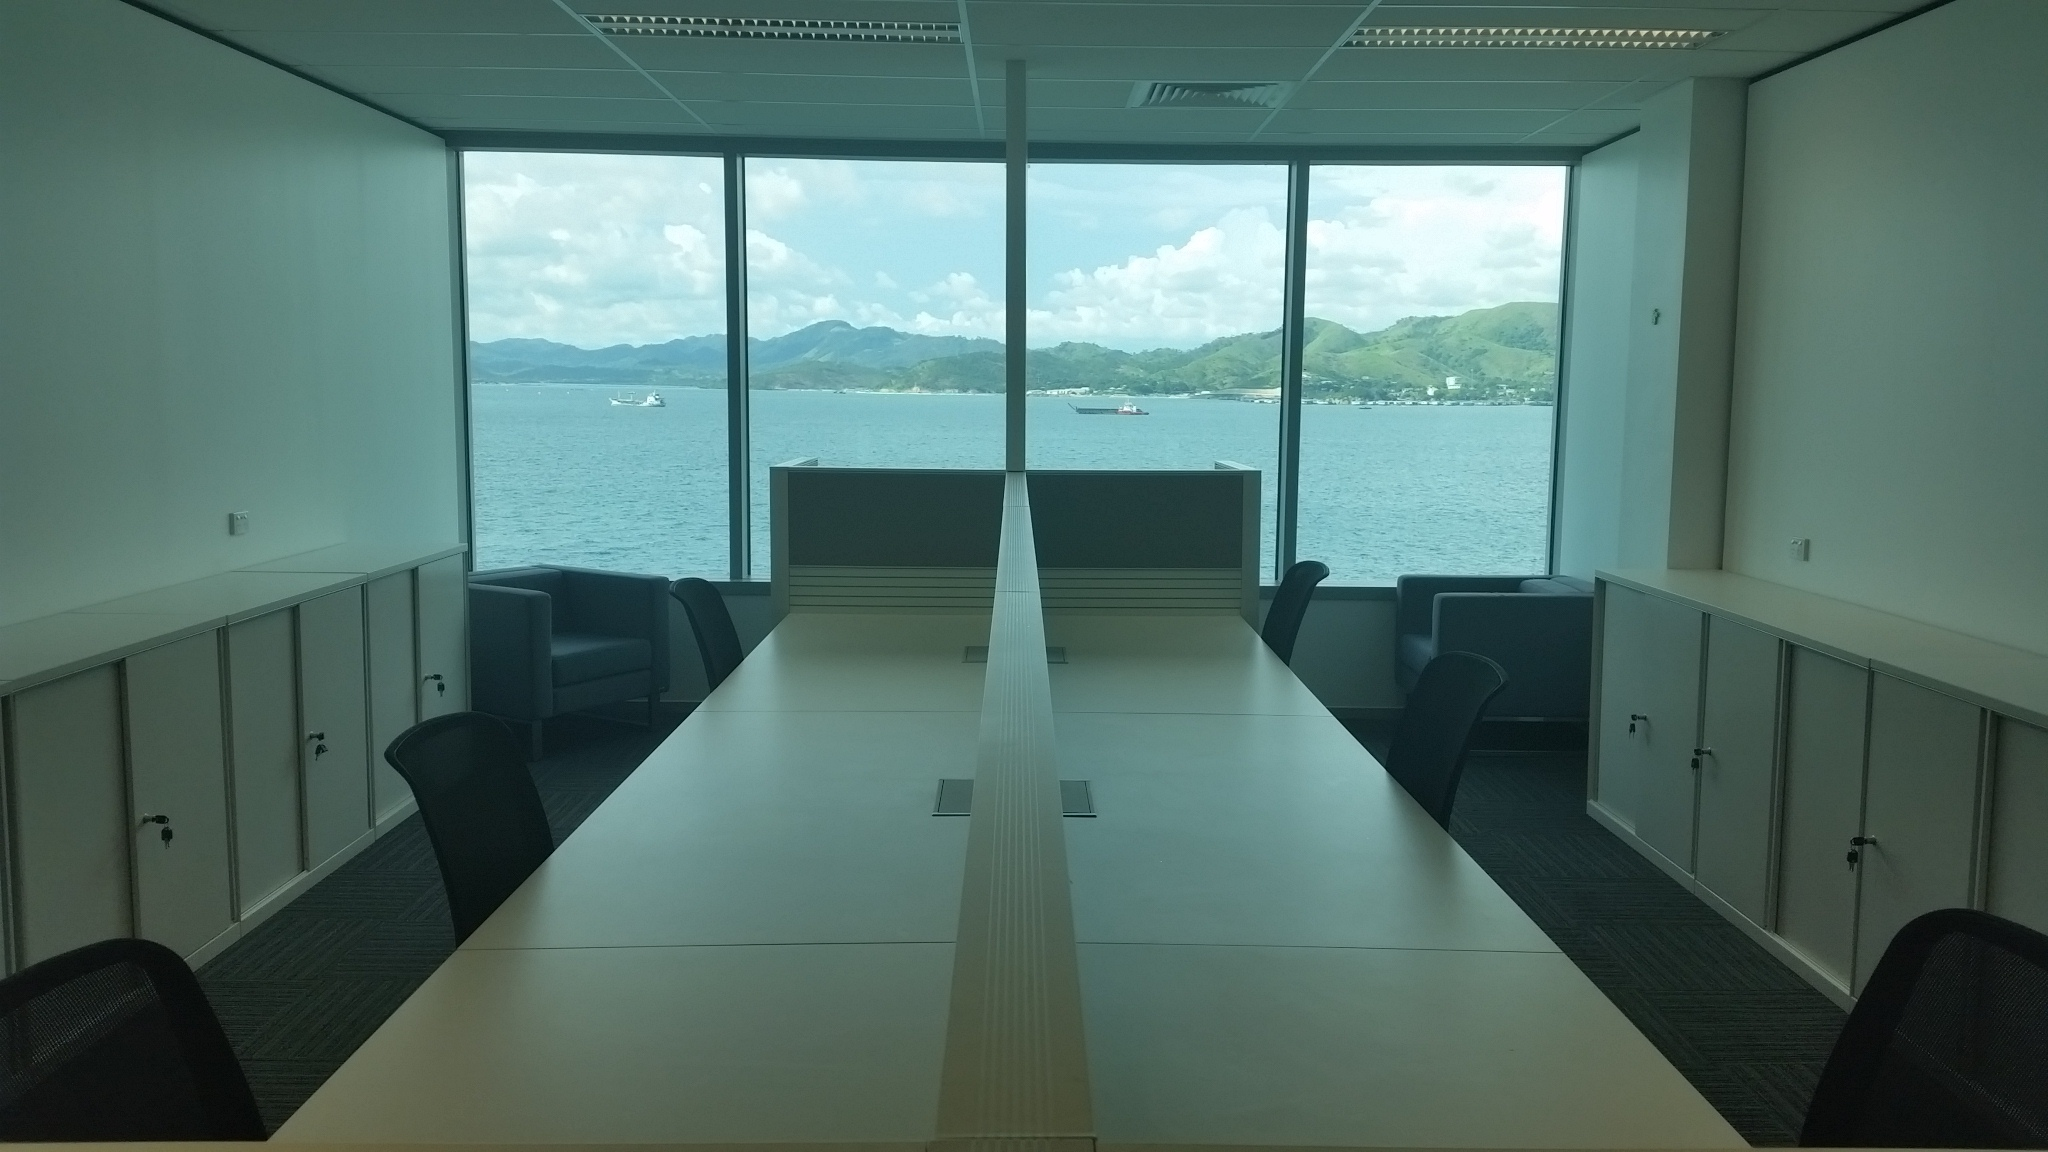 7 Person Fully Equipped Office for Short/Long Term Lease - HARBOURVIEW - Available Now!